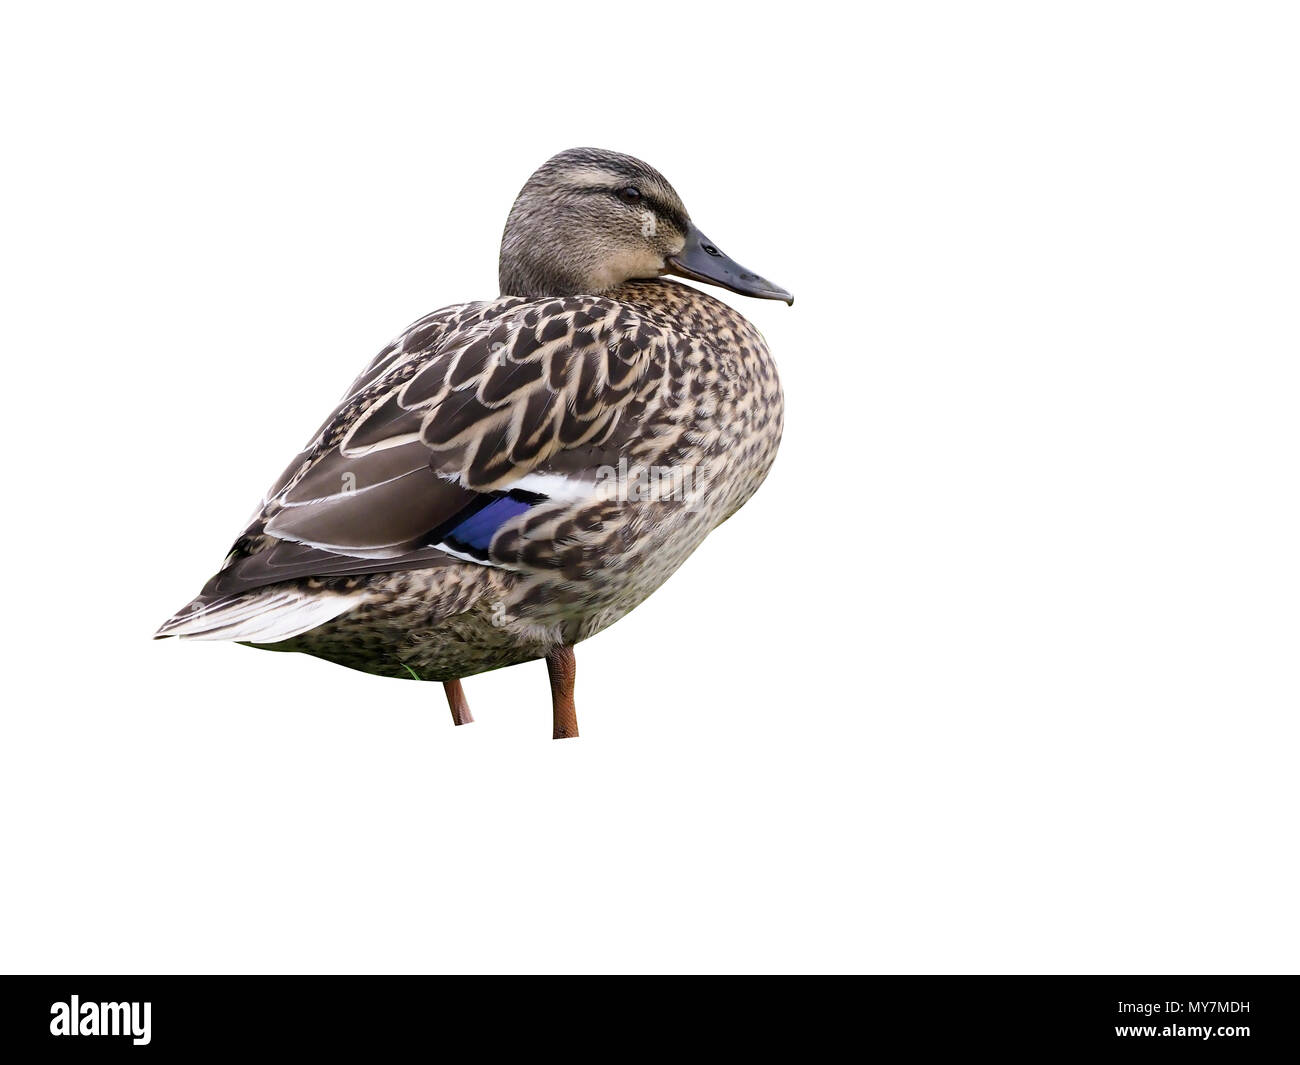 Mallard, Anas platyrhynchos, single female on grass, Midlands, April 2017 - Stock Image